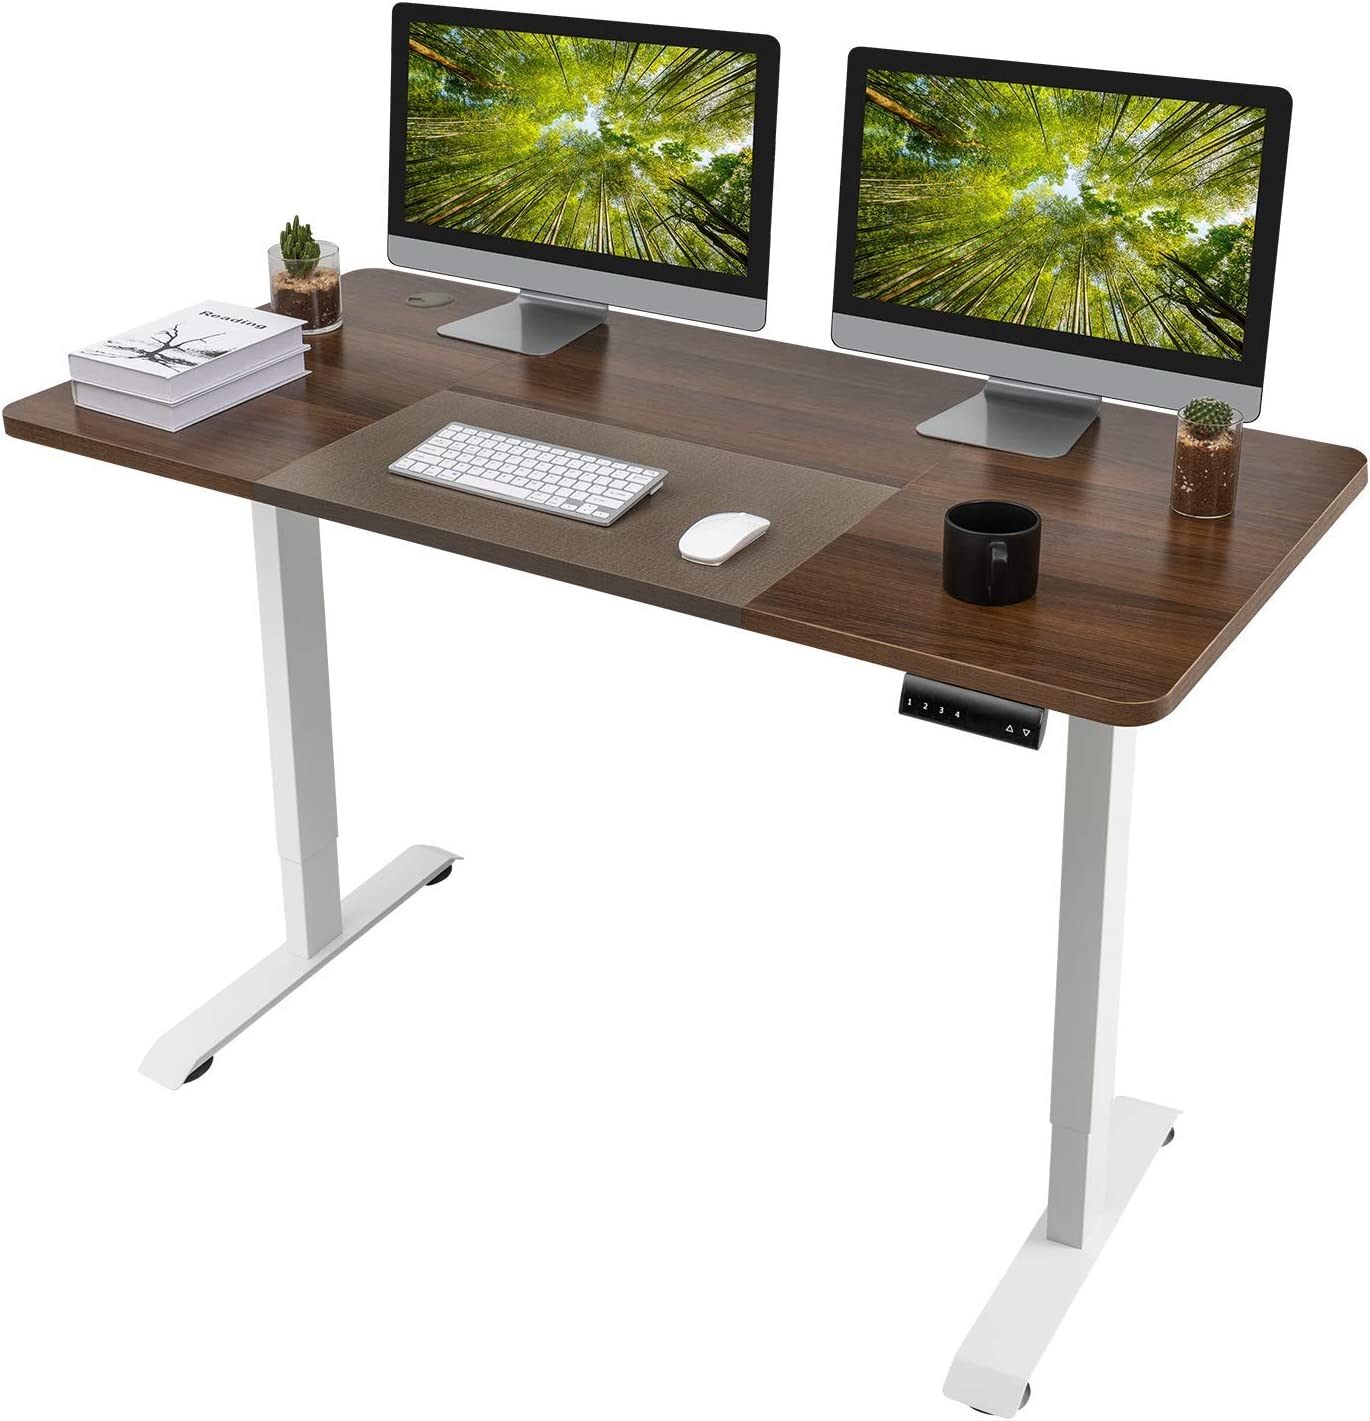 Homall Electric Height Adjustable Standing Desk 55 x 28 Inches Computer Desk Stand Up Home Office Workstation Desk T-Shaped Metal Bracket Desk with Wood Tabletop and Memory Settings (Nut-Brown)